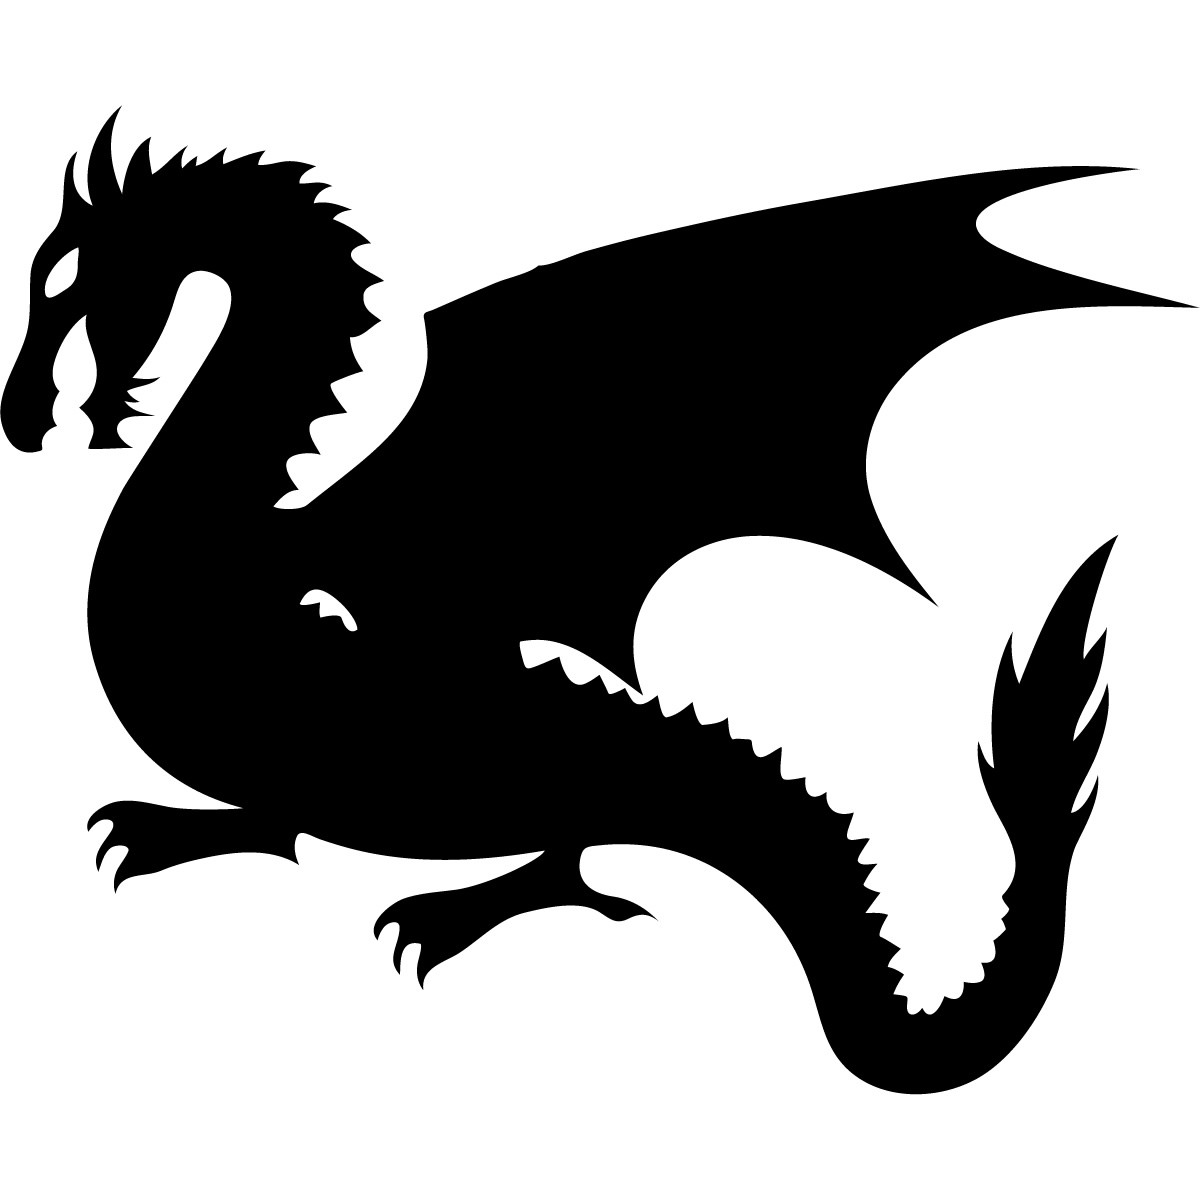 1000+ images about Dragons on Pinterest.